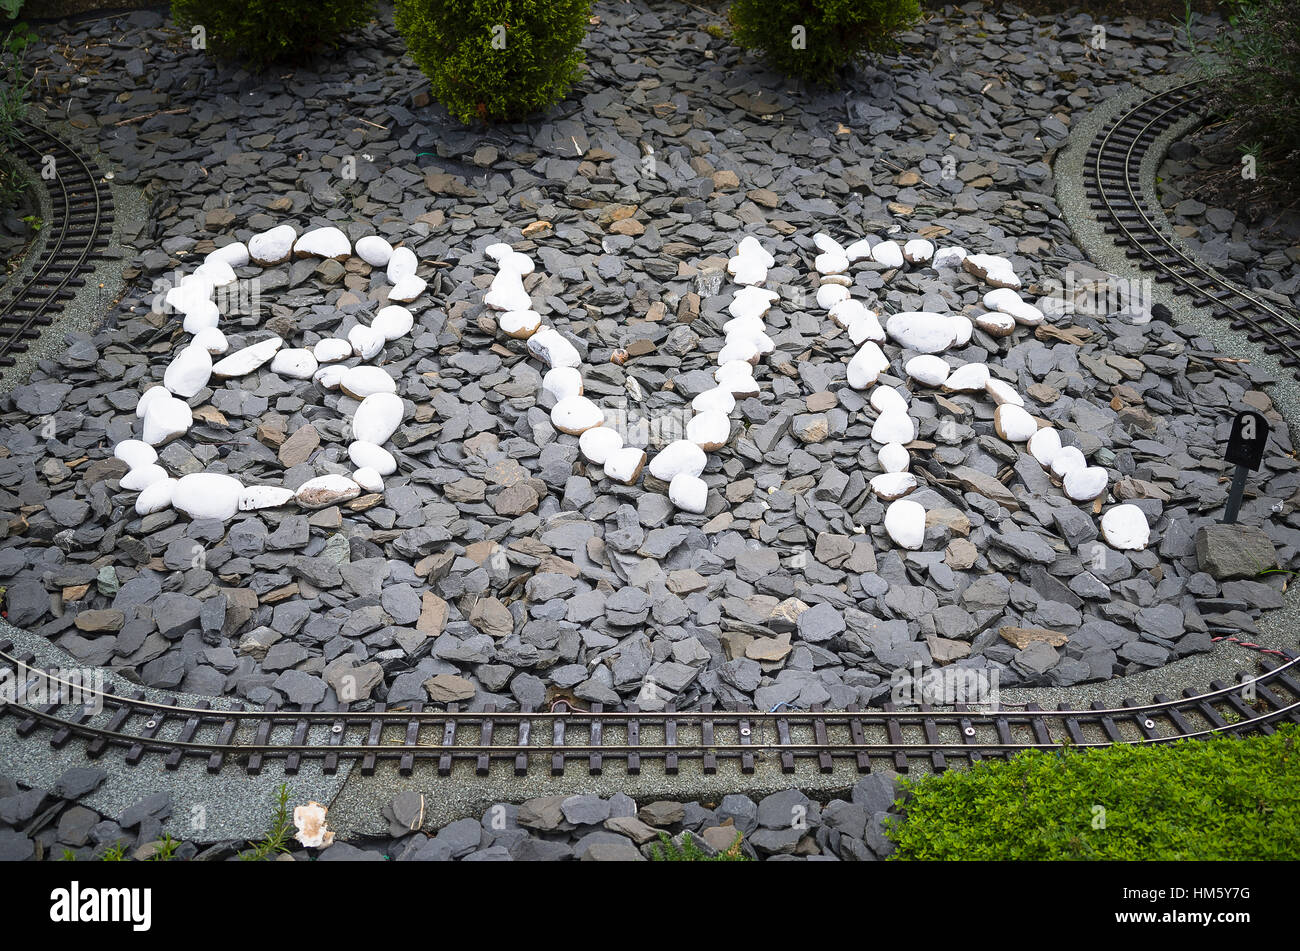 BVR are the initial letters of the Bure Valley Railway in Norfolk UK - Stock Image